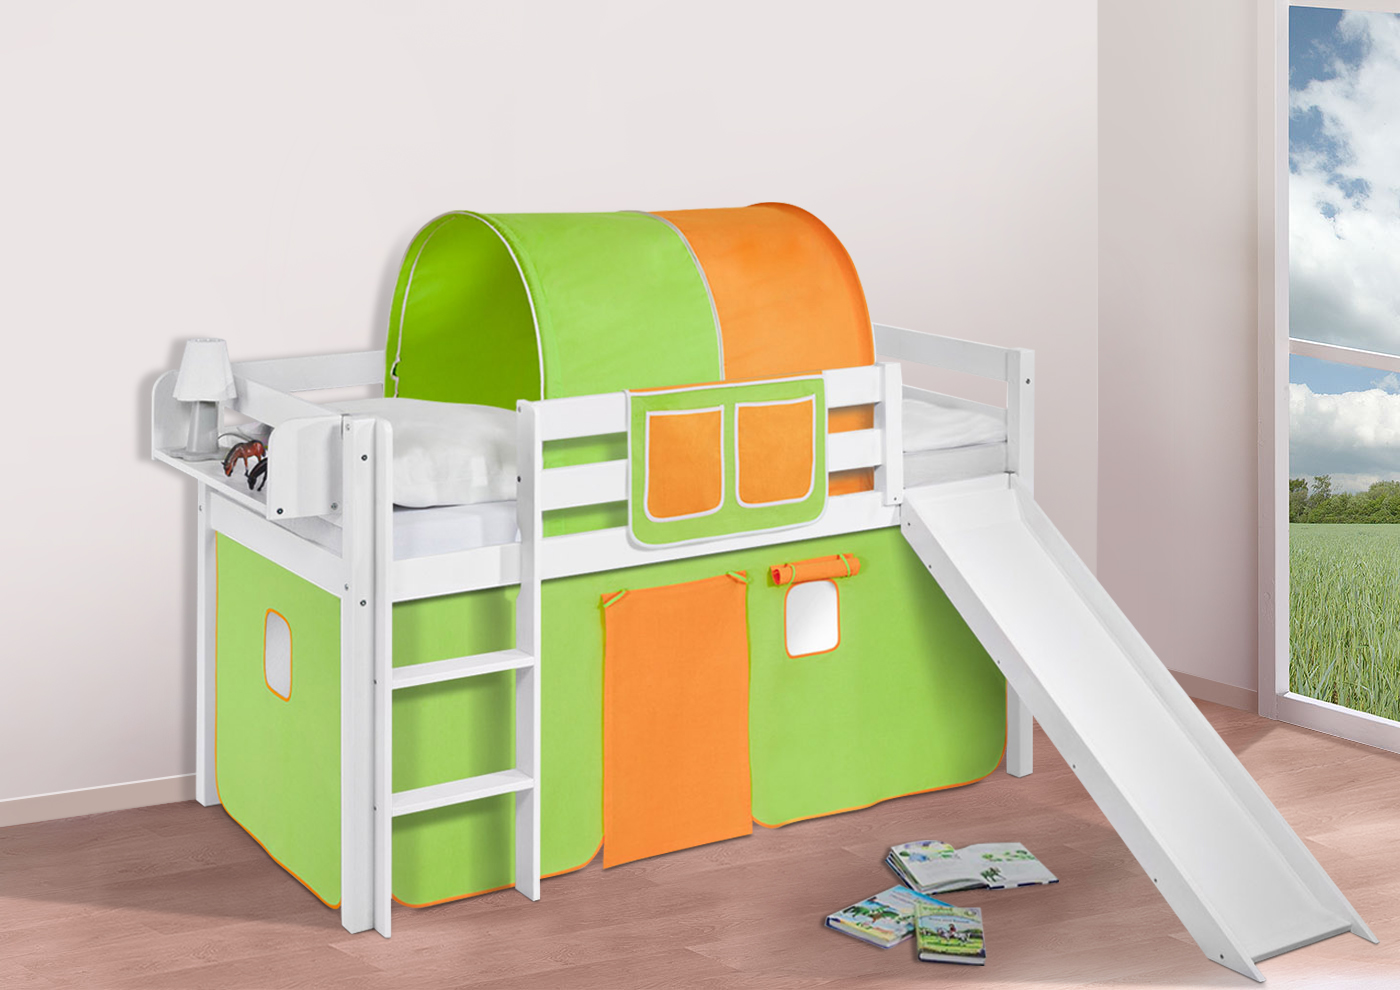 spielbett hochbett kinderbett jelle mit rutsche buche massivholz vorhang ebay. Black Bedroom Furniture Sets. Home Design Ideas